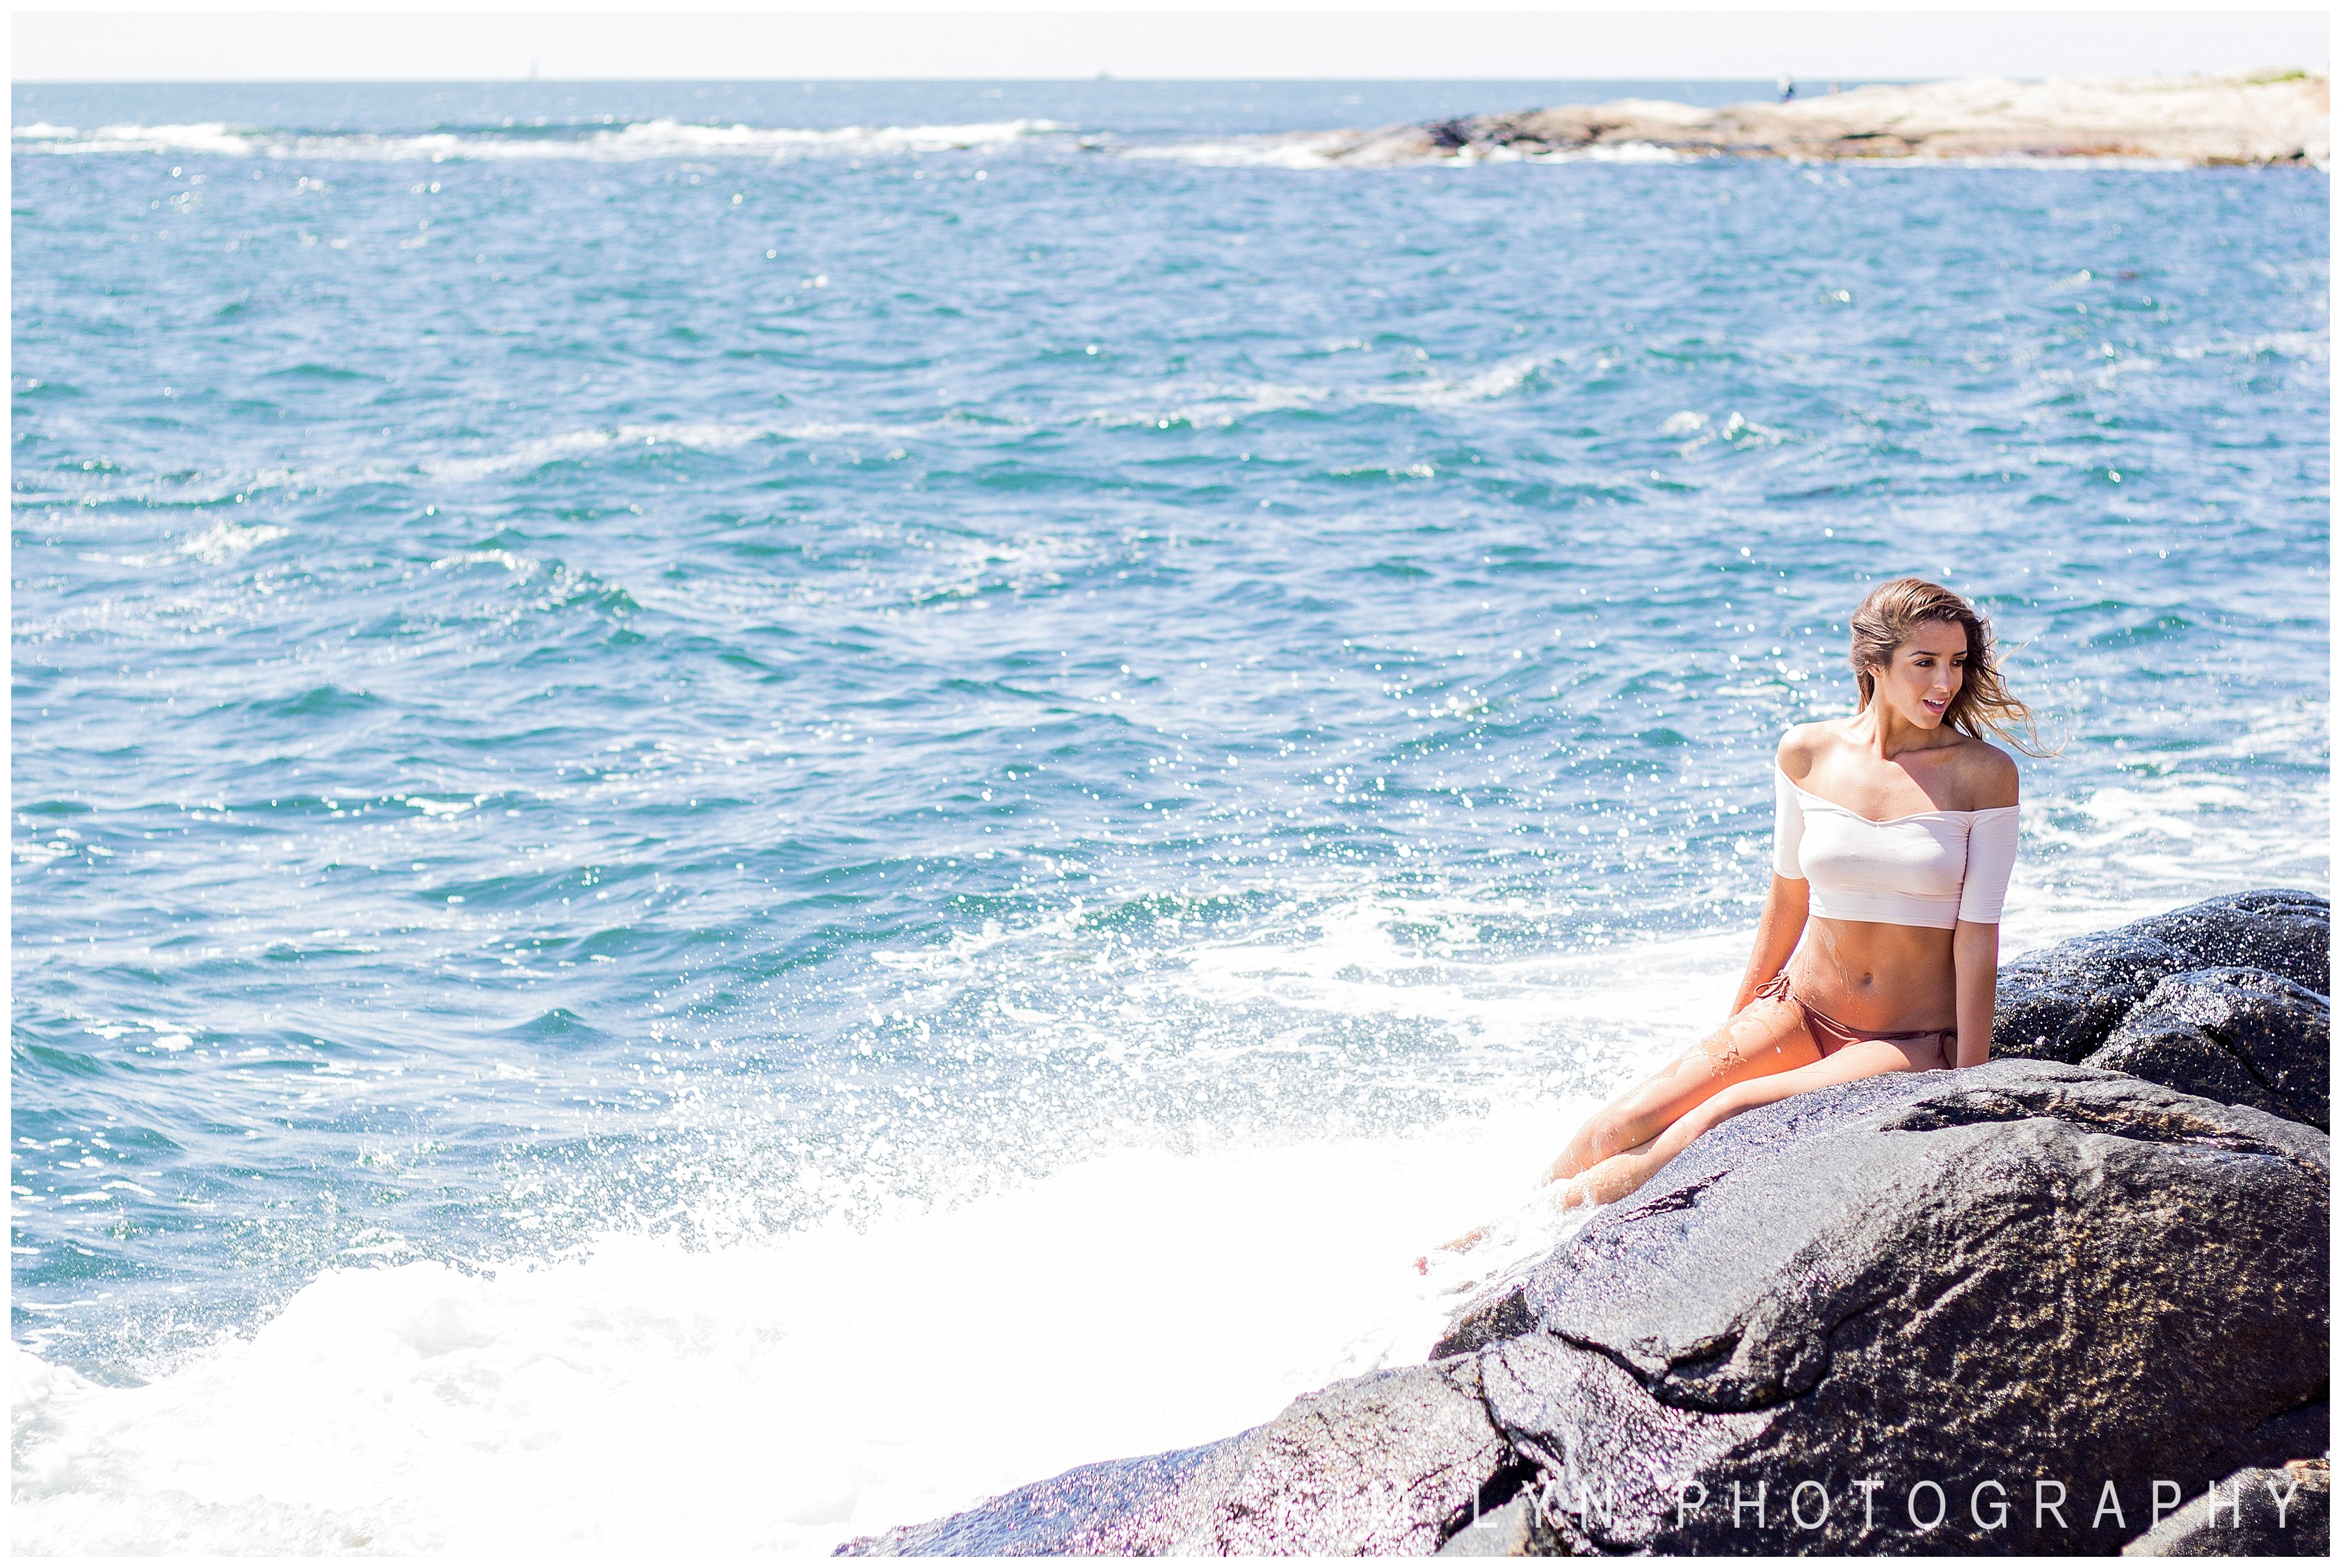 Ashlynne Beach Styled Shoot Narragansett Rhode Island